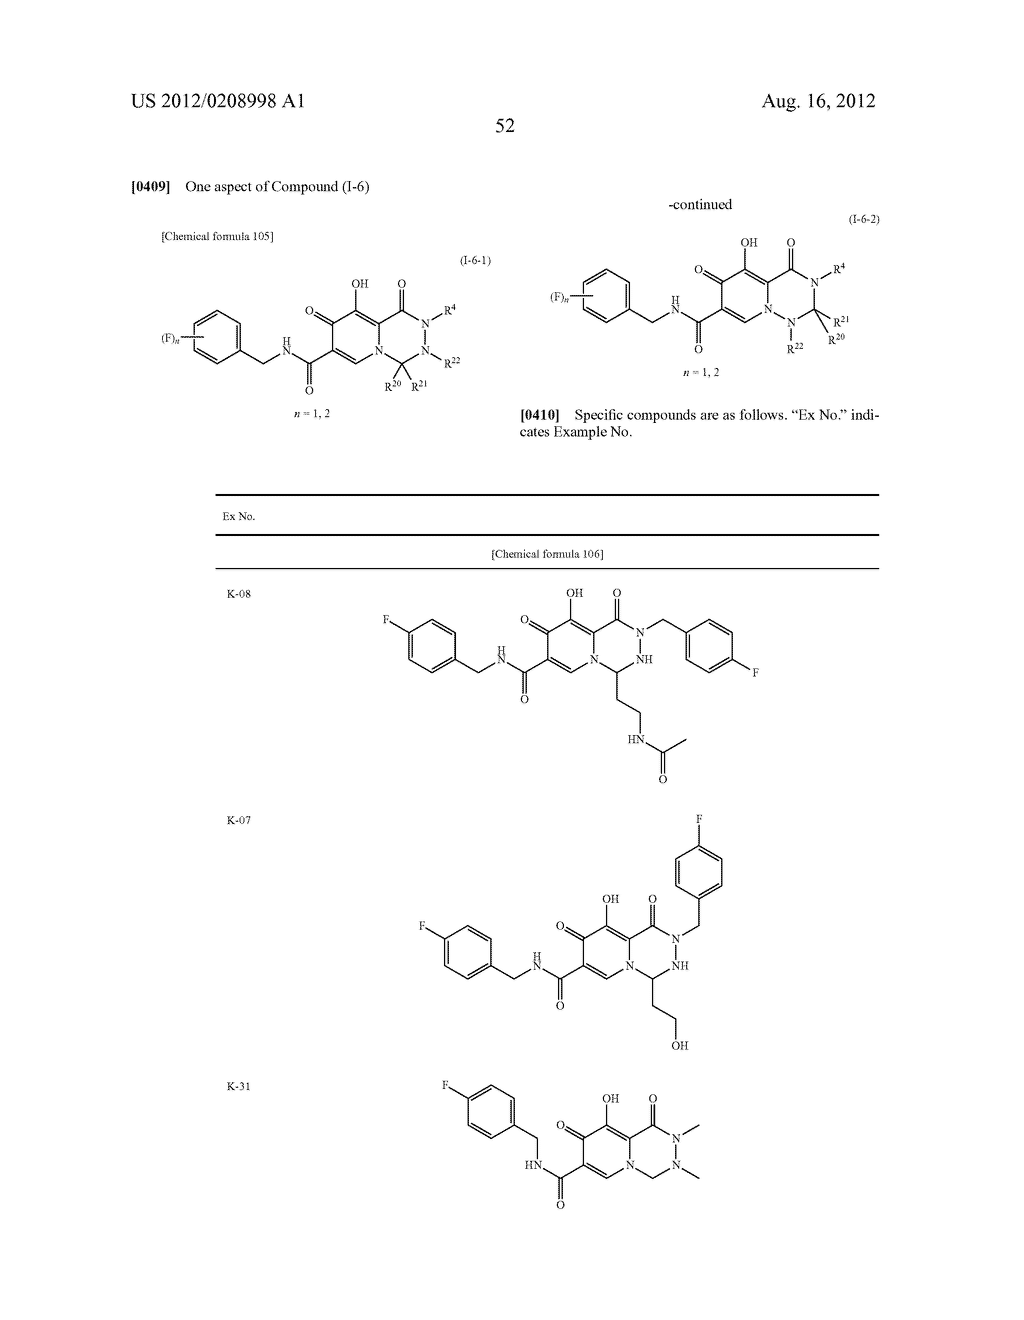 POLYCYCLIC CARBAMOYLPYRIDONE DERIVATIVE HAVING HIV INTEGRASE INHIBITORY     ACTIVITY - diagram, schematic, and image 53